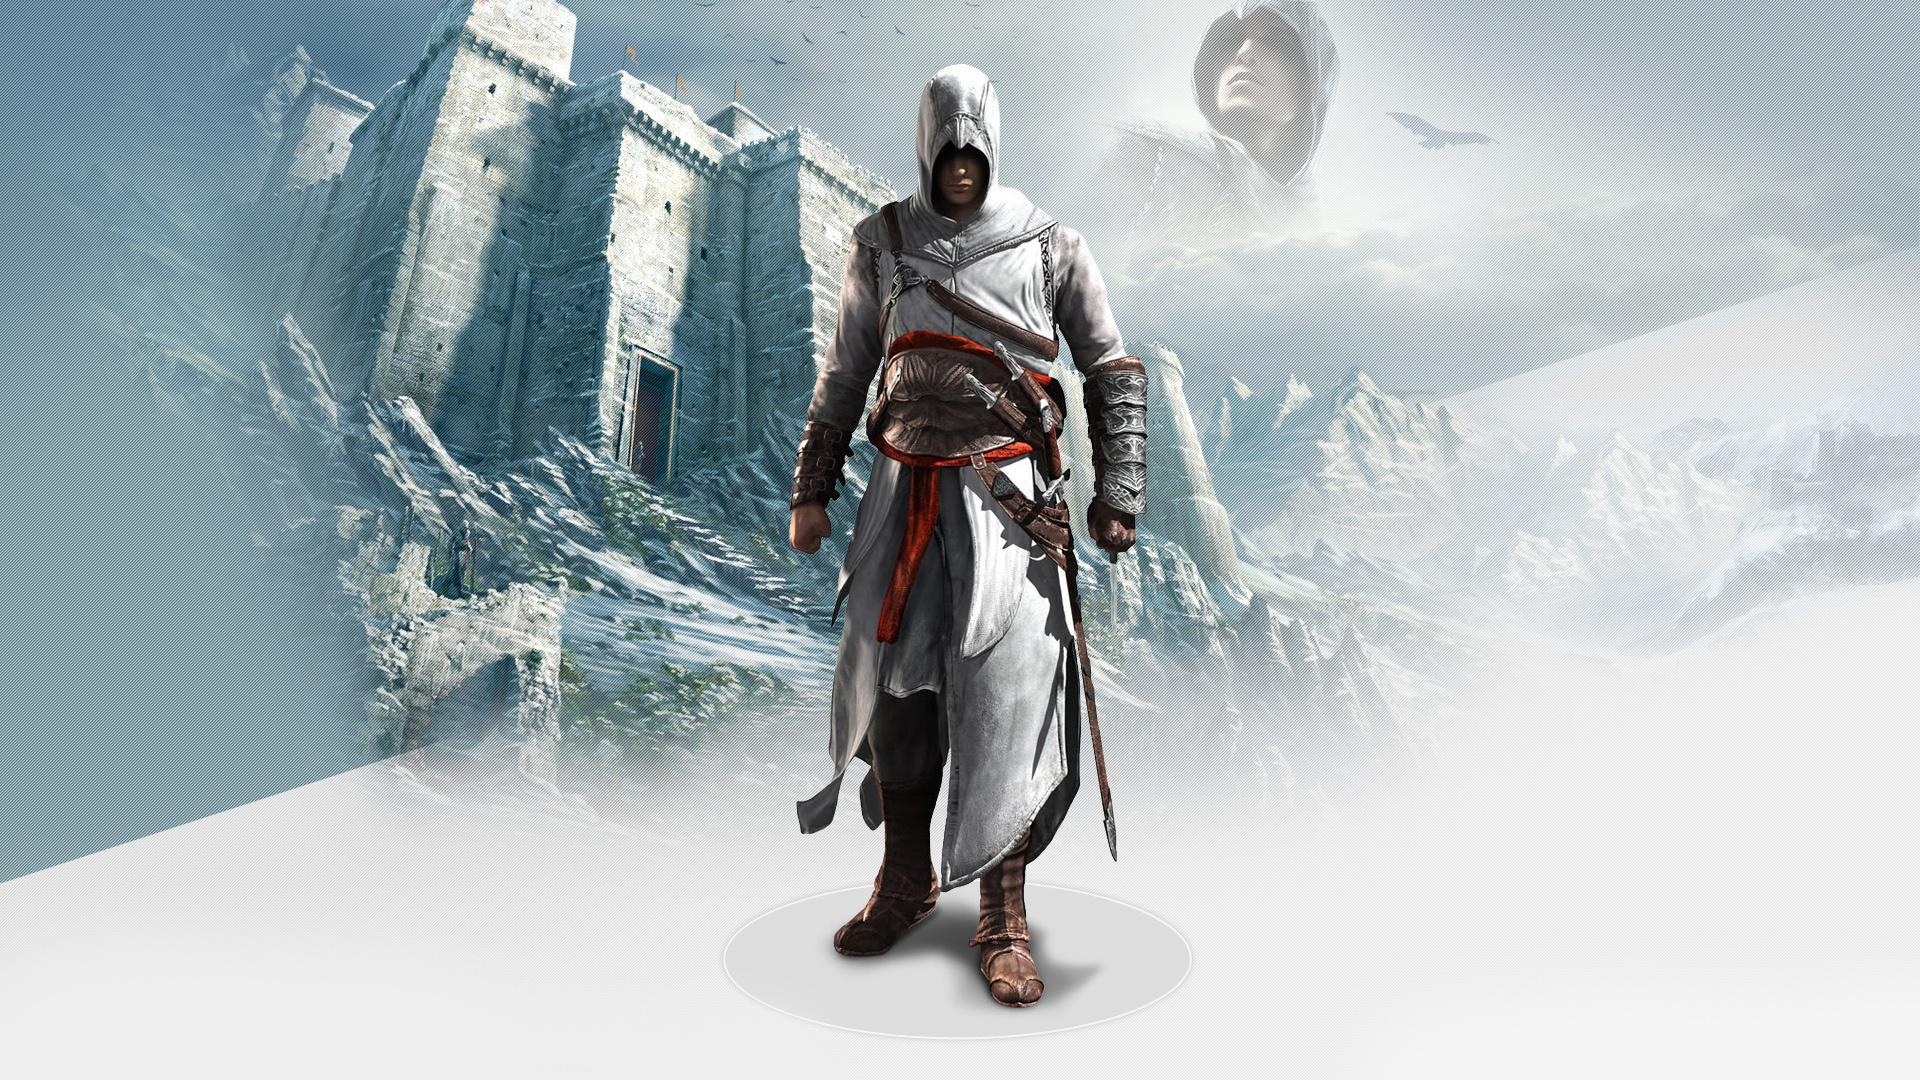 Assassins Creed Hd Wallpapers Free Wallpaper Downloads Assassins